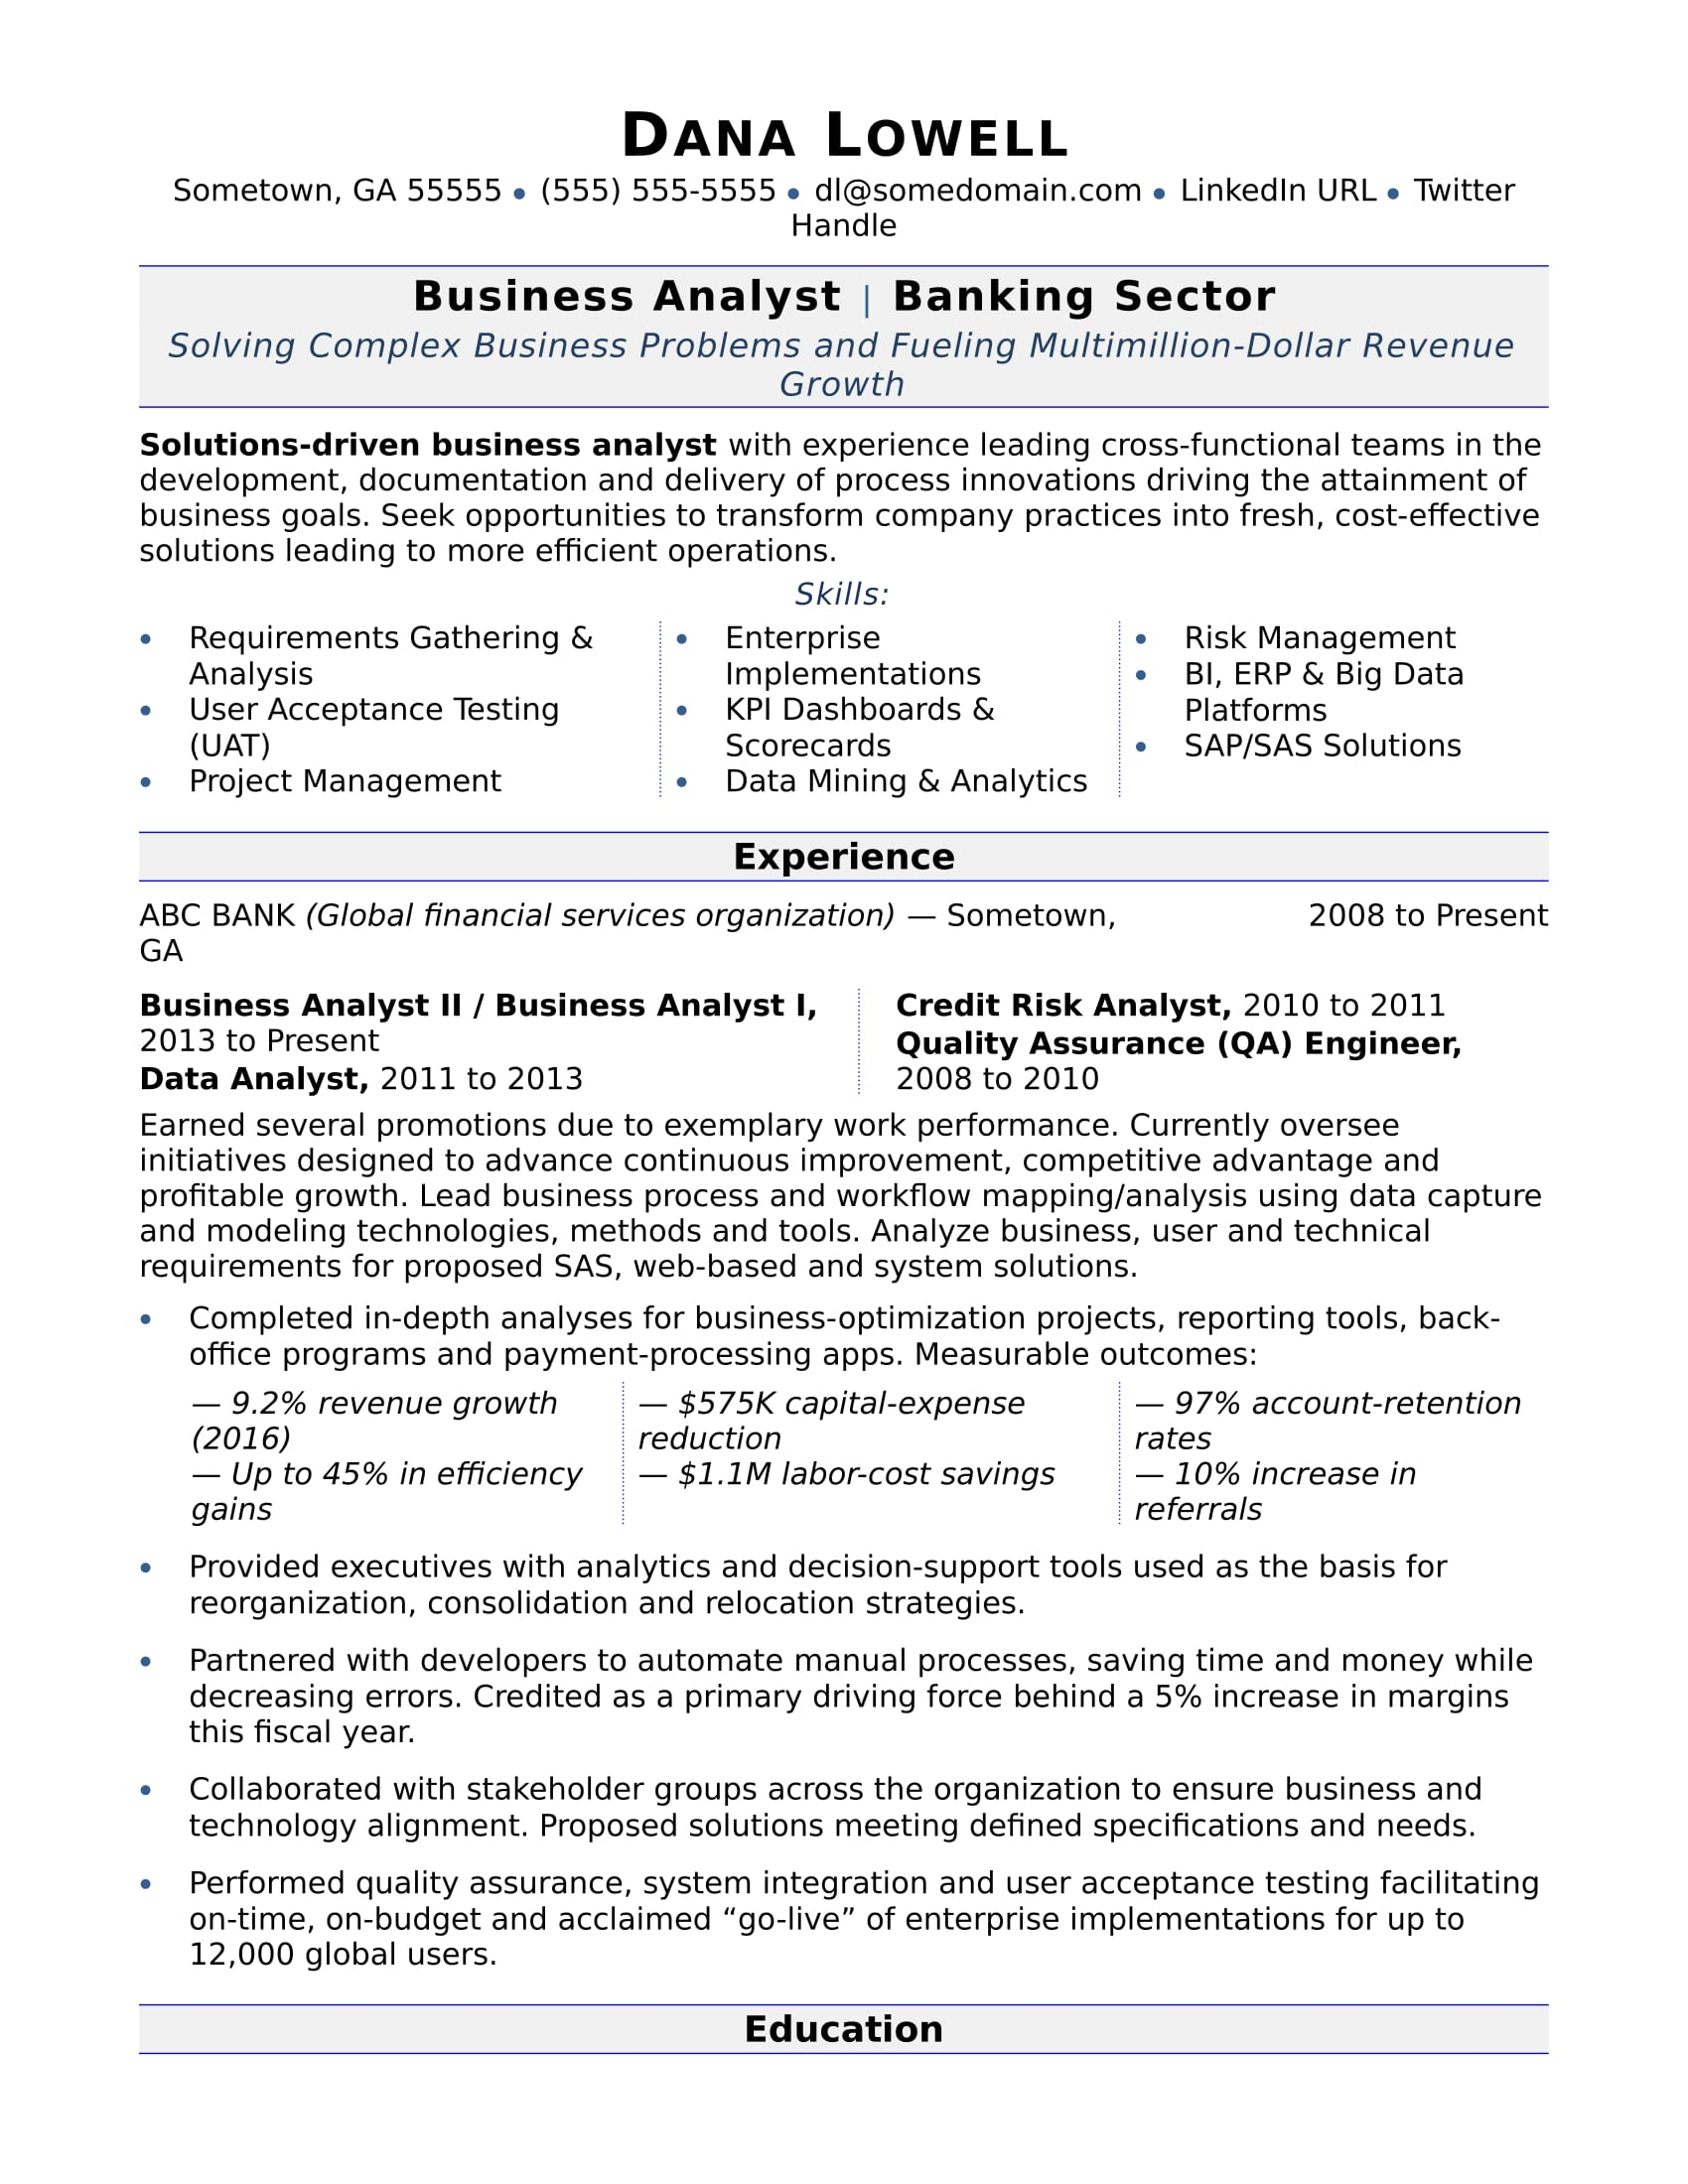 Awesome Business Analyst Resume Sample For Ba Resume Sample